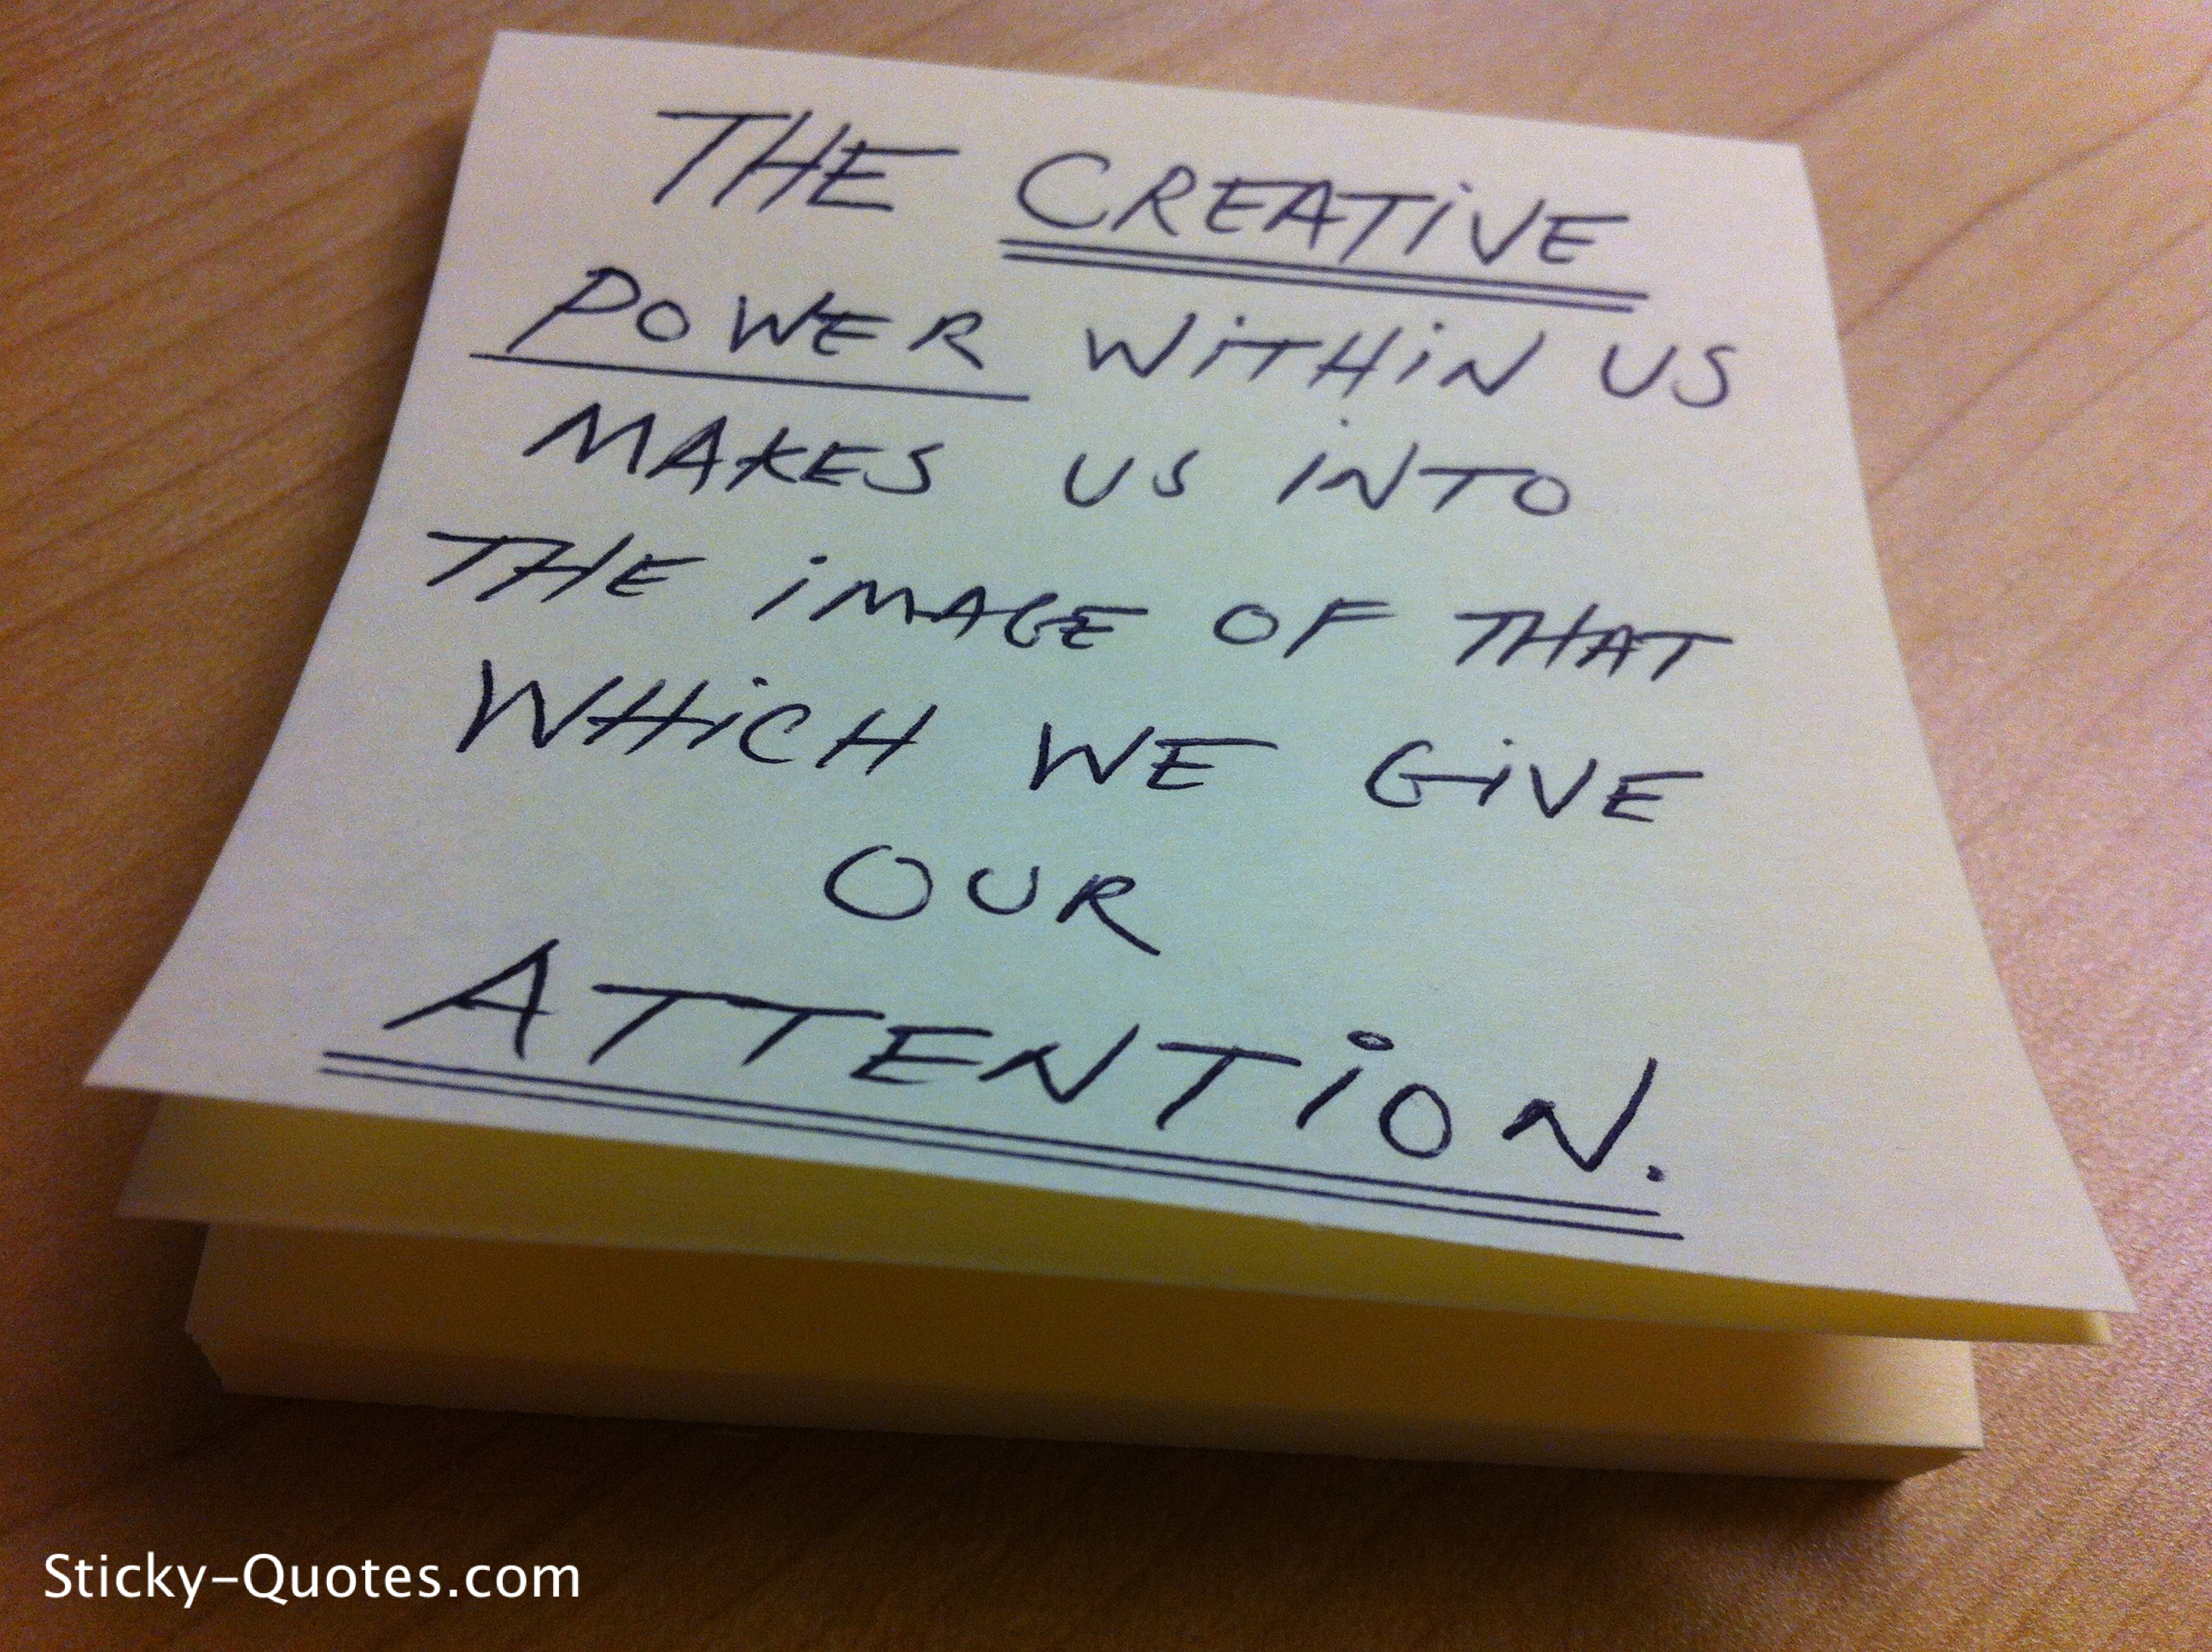 The Creative Power Within Us Makes Us Into The Image Of That Which We Give Our AttentionThe Creative Power Within Us Makes Us Into The Image Of That Which We Give Our Attention